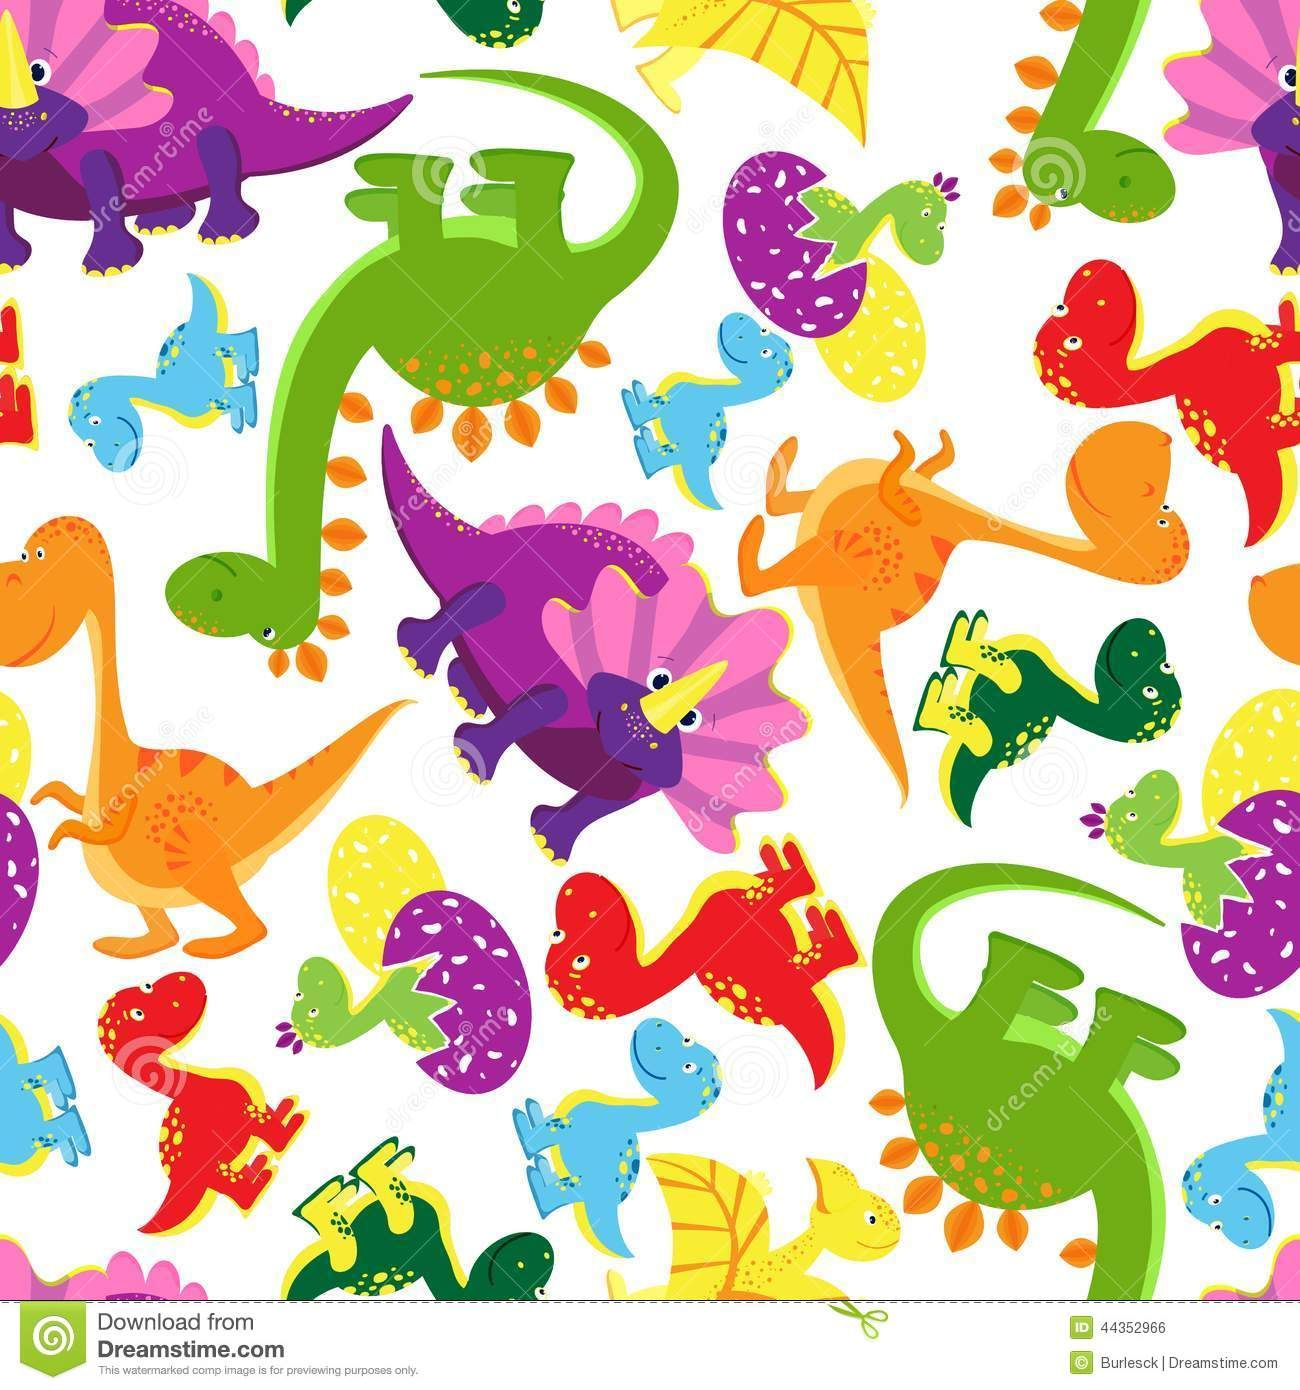 Baby patterns fabric google search baby fabric for Baby dinosaur fabric